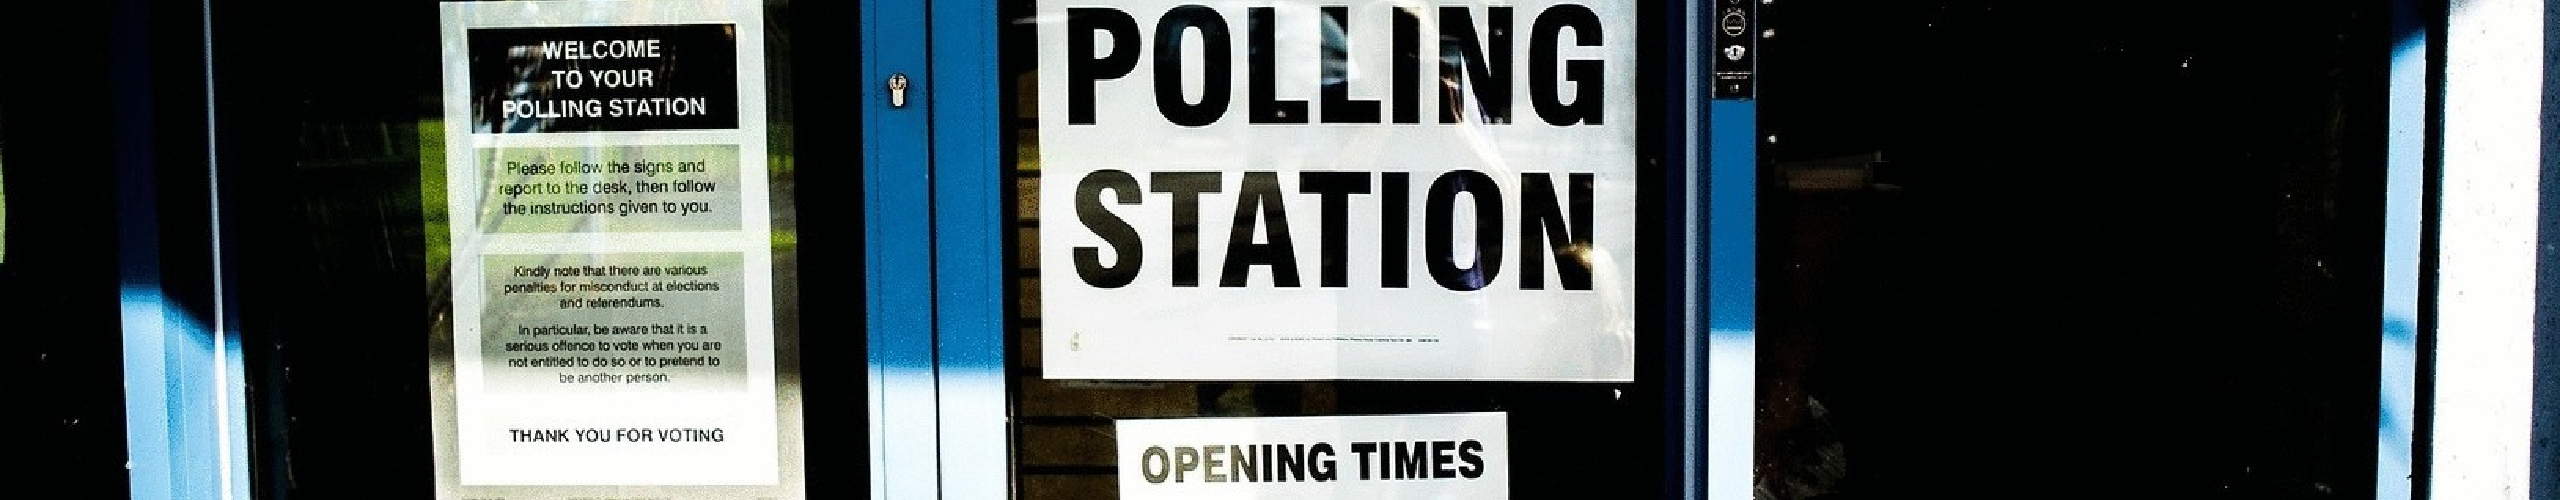 Polling Station window banner